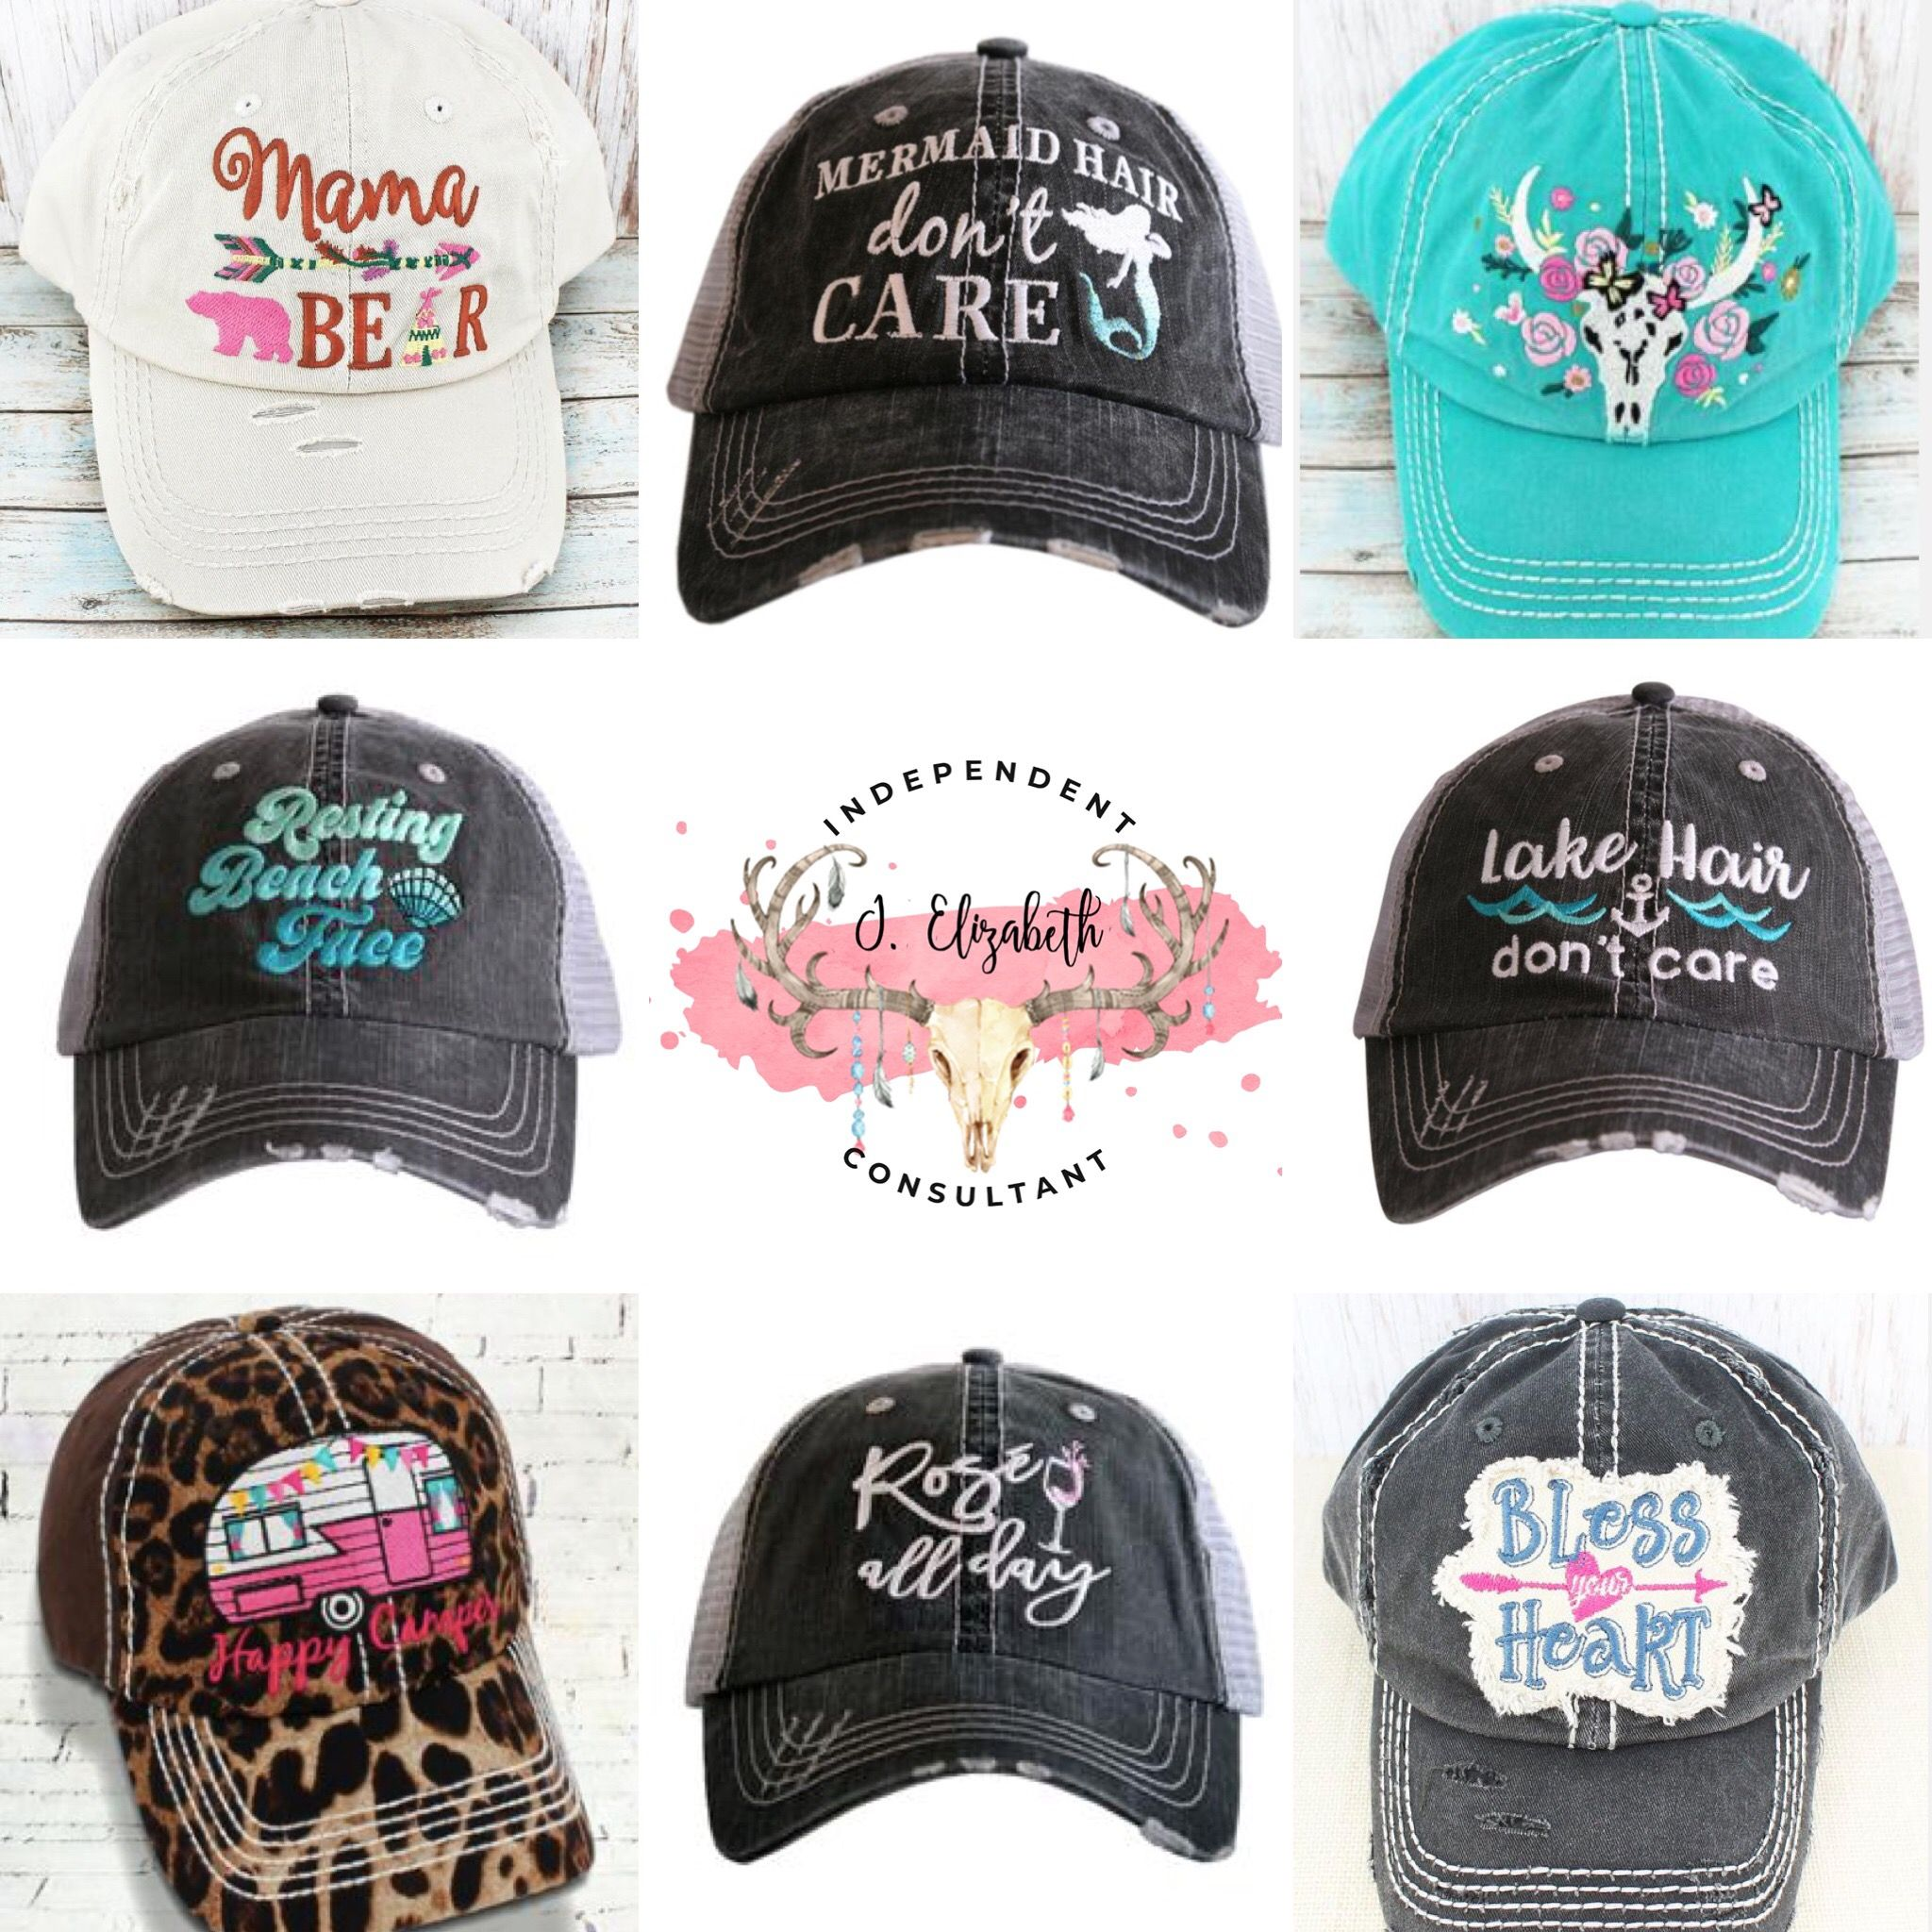 13272e7c27f Hats for women. Women s hats. Hats with sayings. Shirts with sayings. Women s  hats. Funny hats. Hats. Lettering. Hand lettering. Calligraphy. Funny.